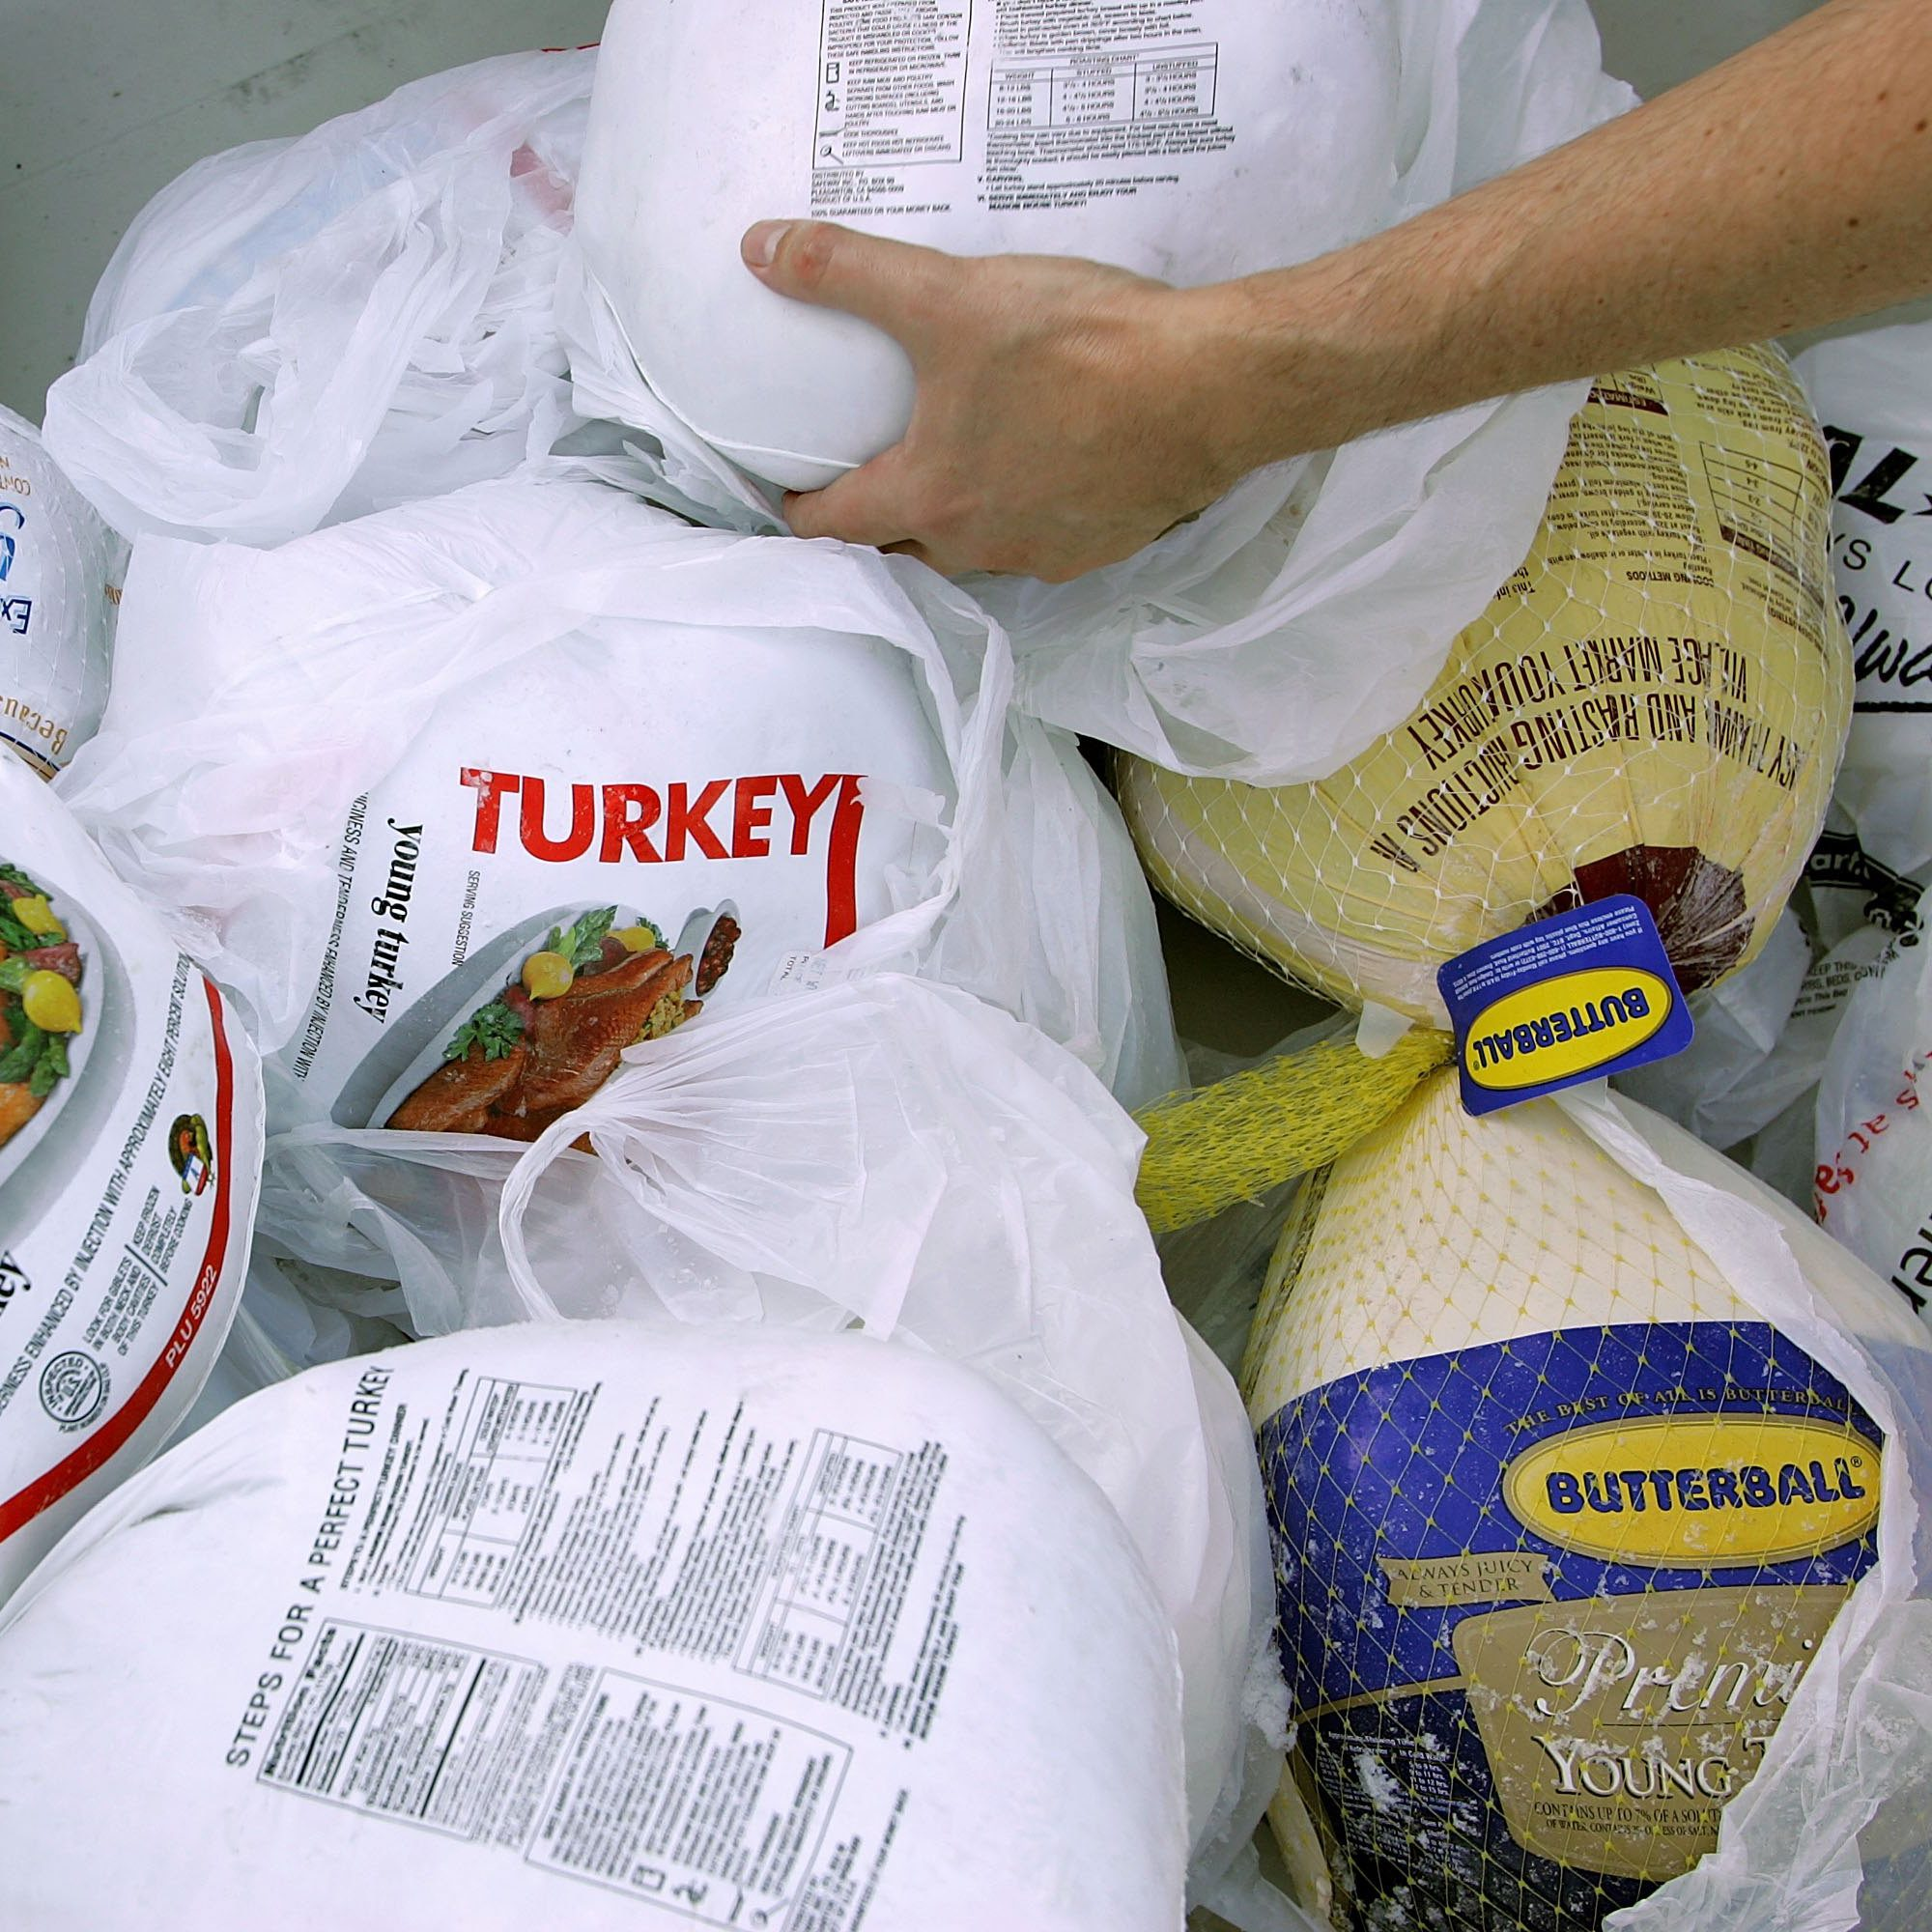 SAN FRANCISCO - NOVEMBER 21: A volunteer prepares a box of turkeys to be given out during the 2006 holiday turkey distribution at the San Francisco Food Bank November 21, 2006 in San Francisco, California. Despite donations being down at most food banks across the country, the San Francisco Food Bank will distribute over 1,500 turkeys to churches and community centers over the holiday season. (Photo by Justin Sullivan/Getty Images)